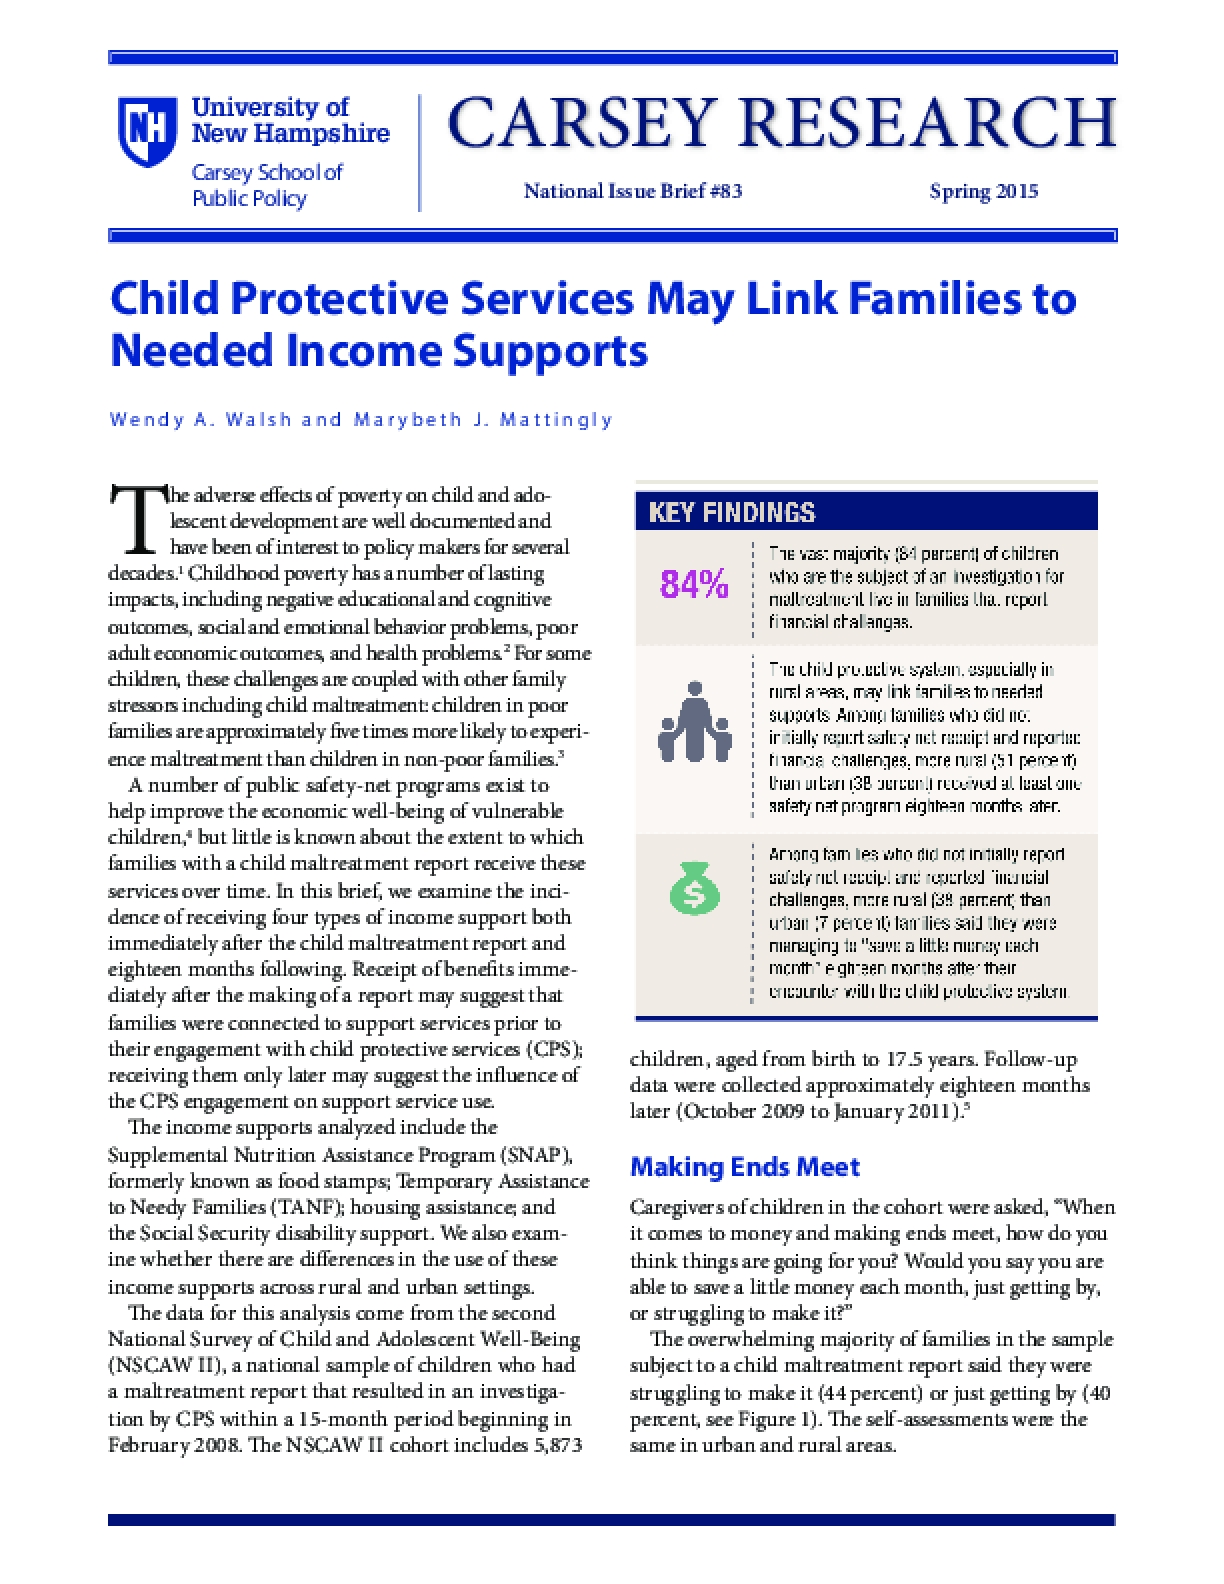 Child Protective Services May Link Families to Needed Income Supports